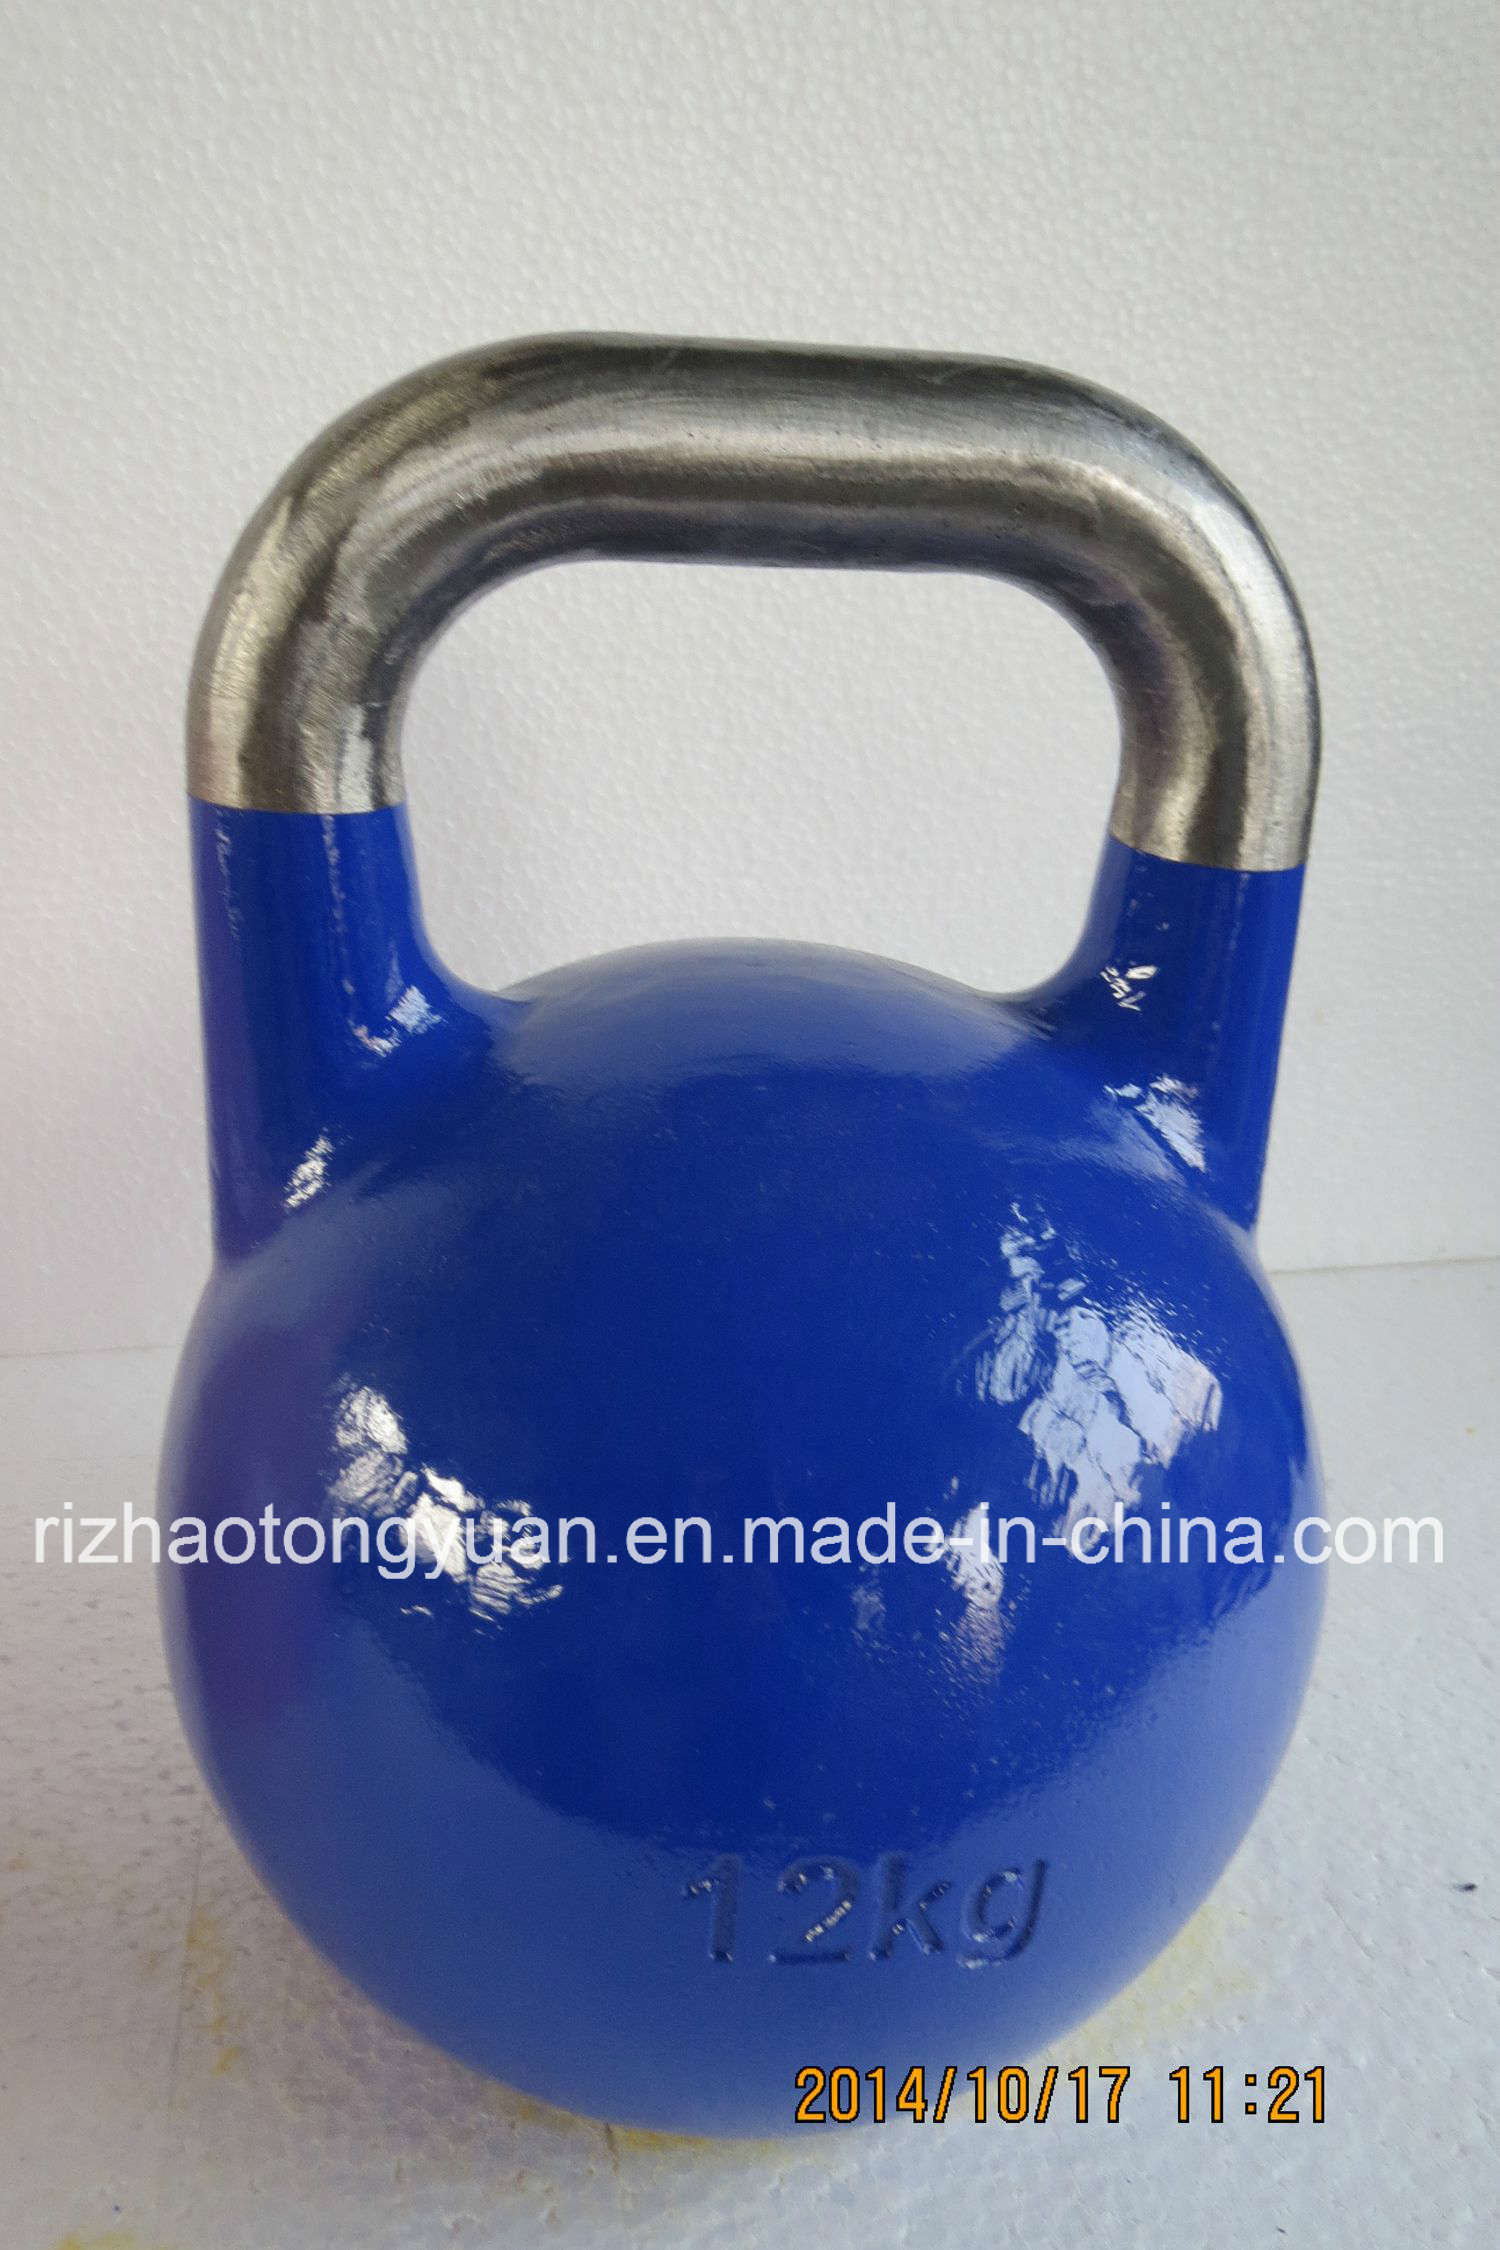 Competiton Kettlebell with Hole